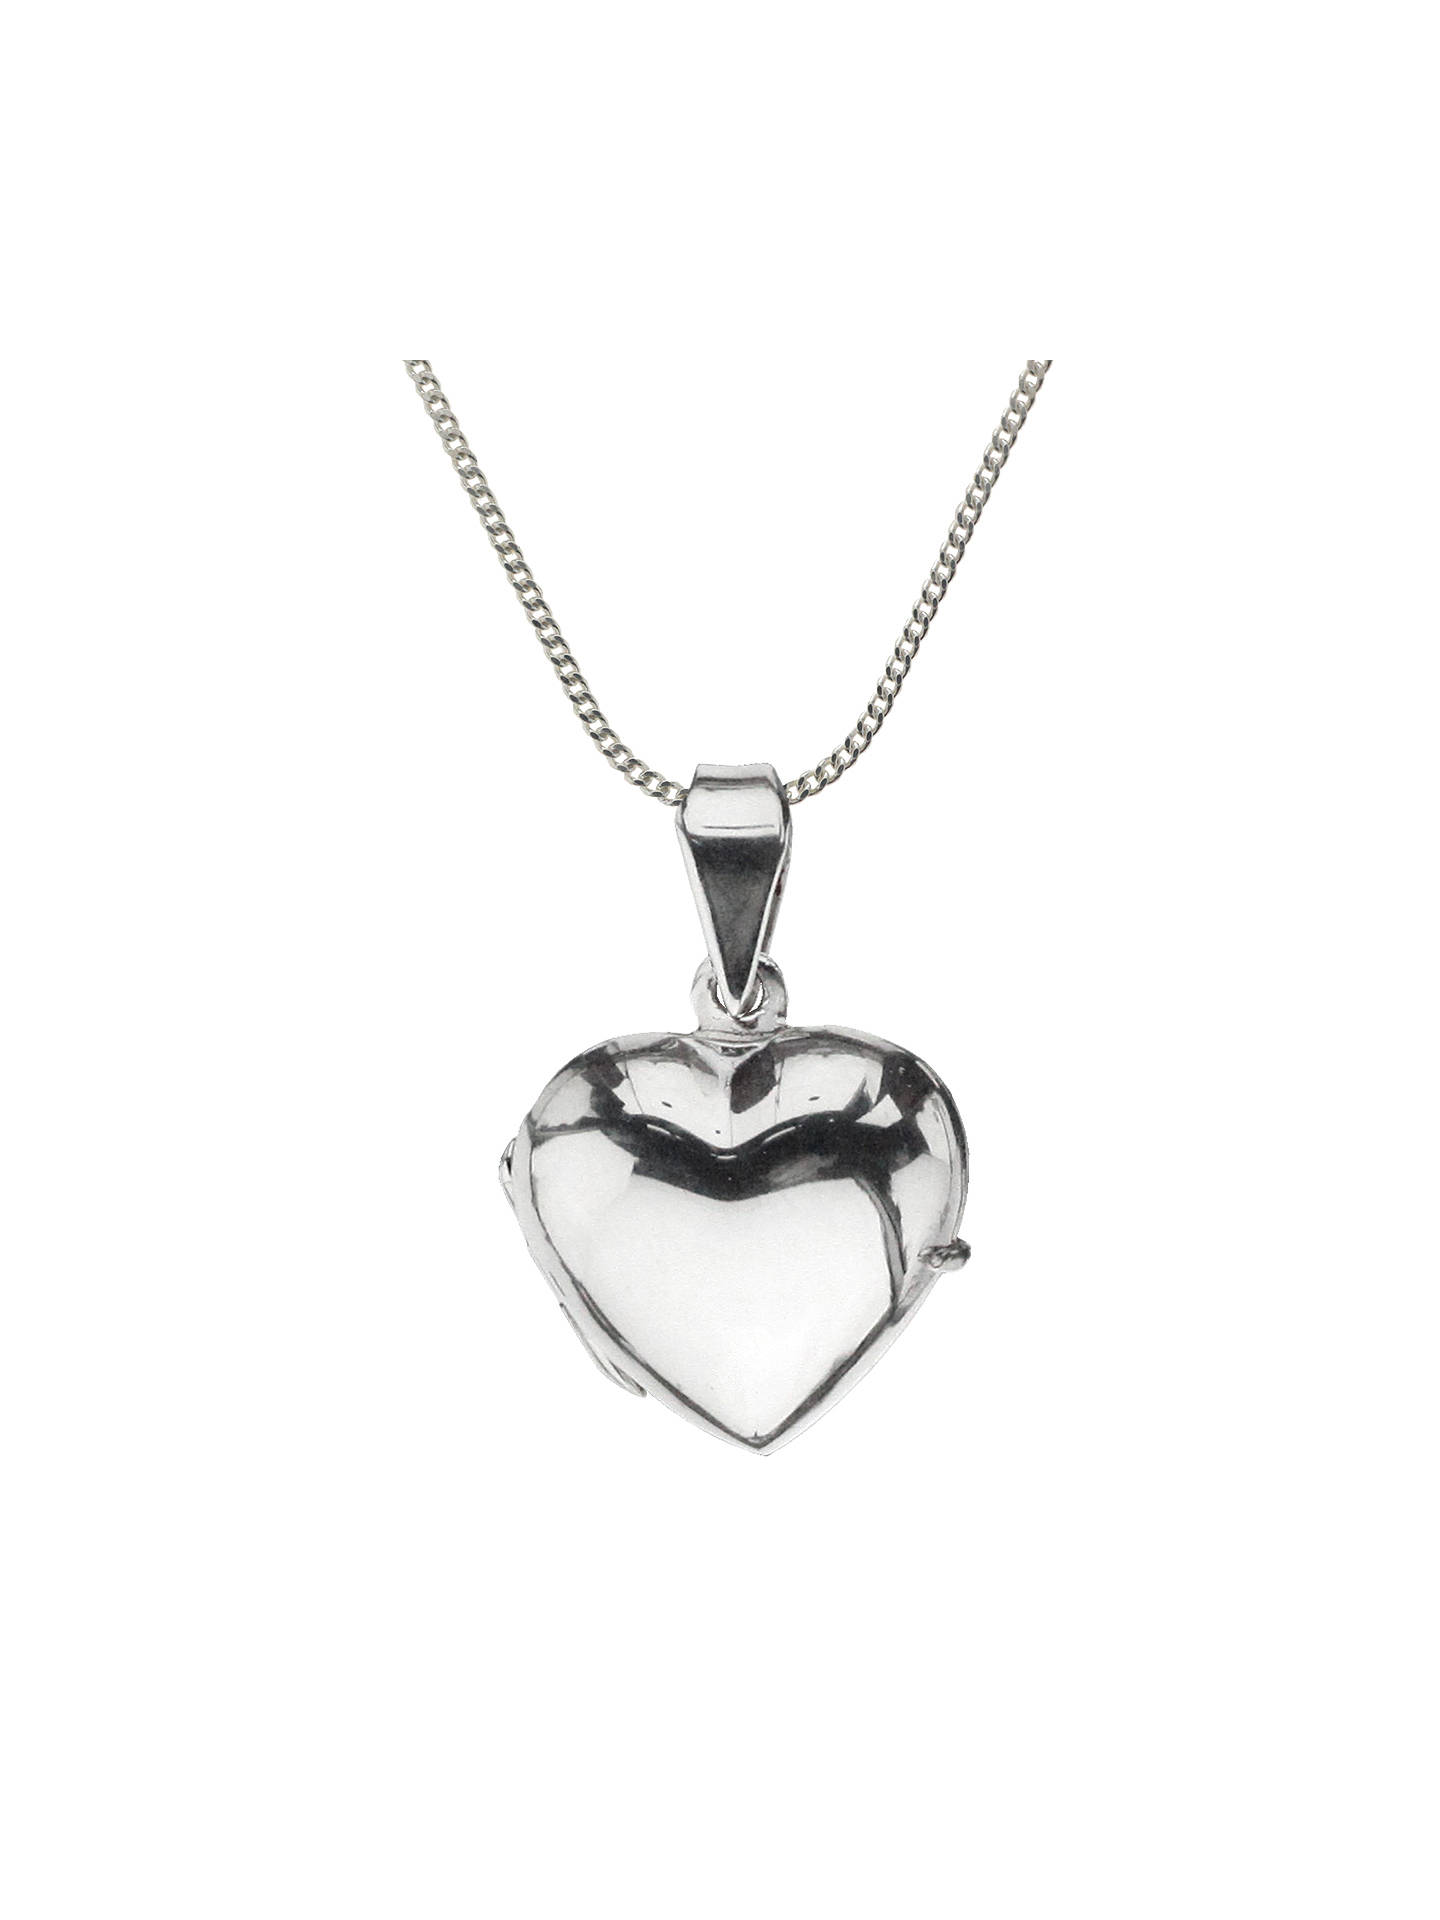 fbba768202 Buy Nina B Sterling Silver Heart Shaped Locket Chain Pendant Online at  johnlewis.com ...